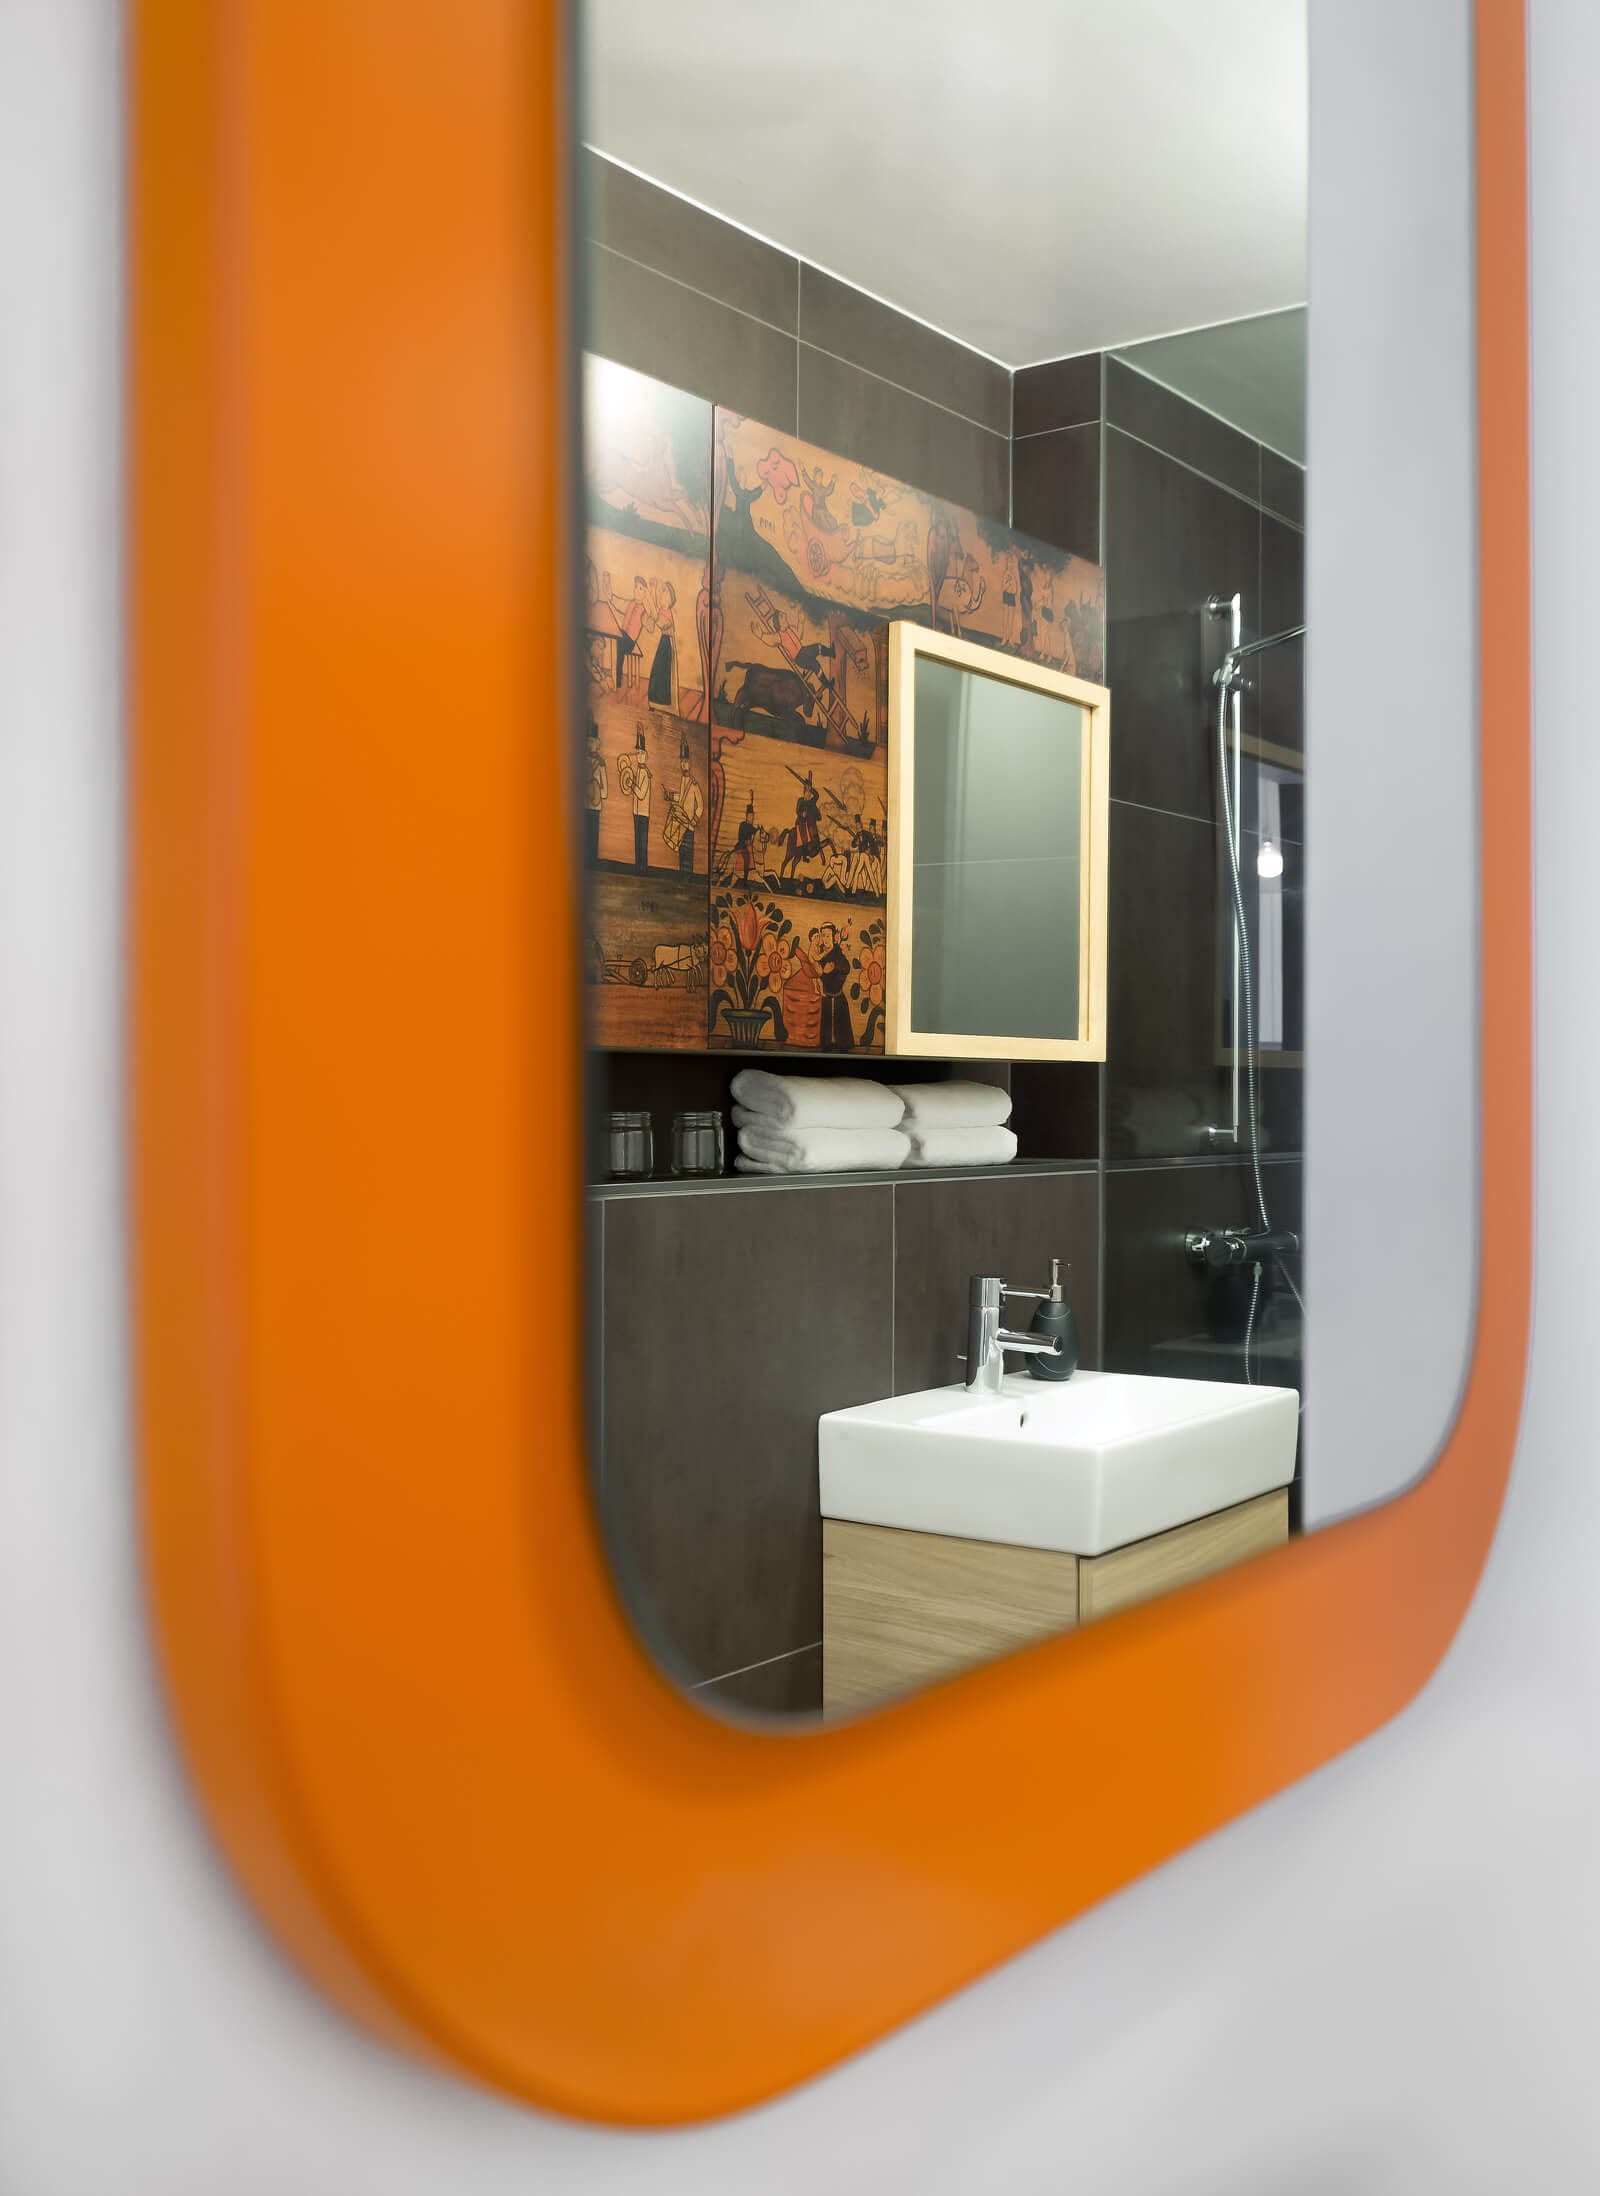 Close view of the hallway mirror reveals a slice of the modern, luxurious bathroom.